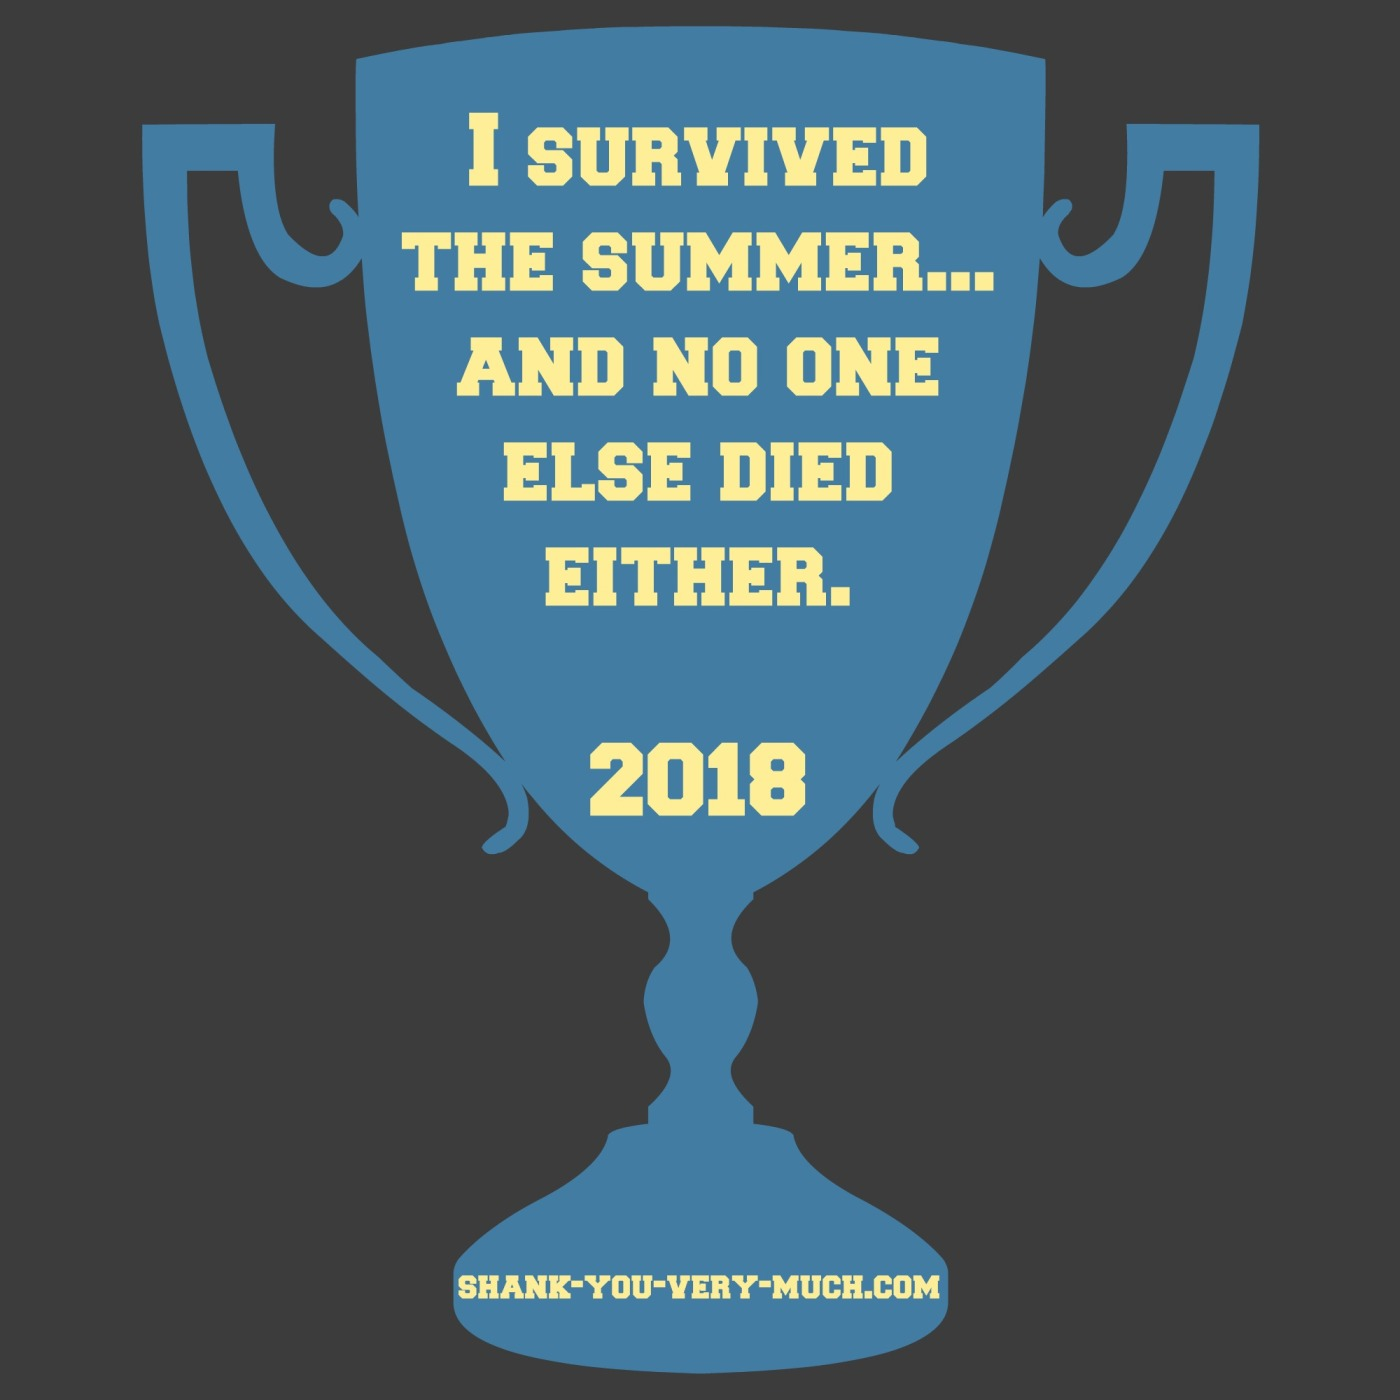 An image of a trophy that says 'I survived the summer... and no one else died either.'